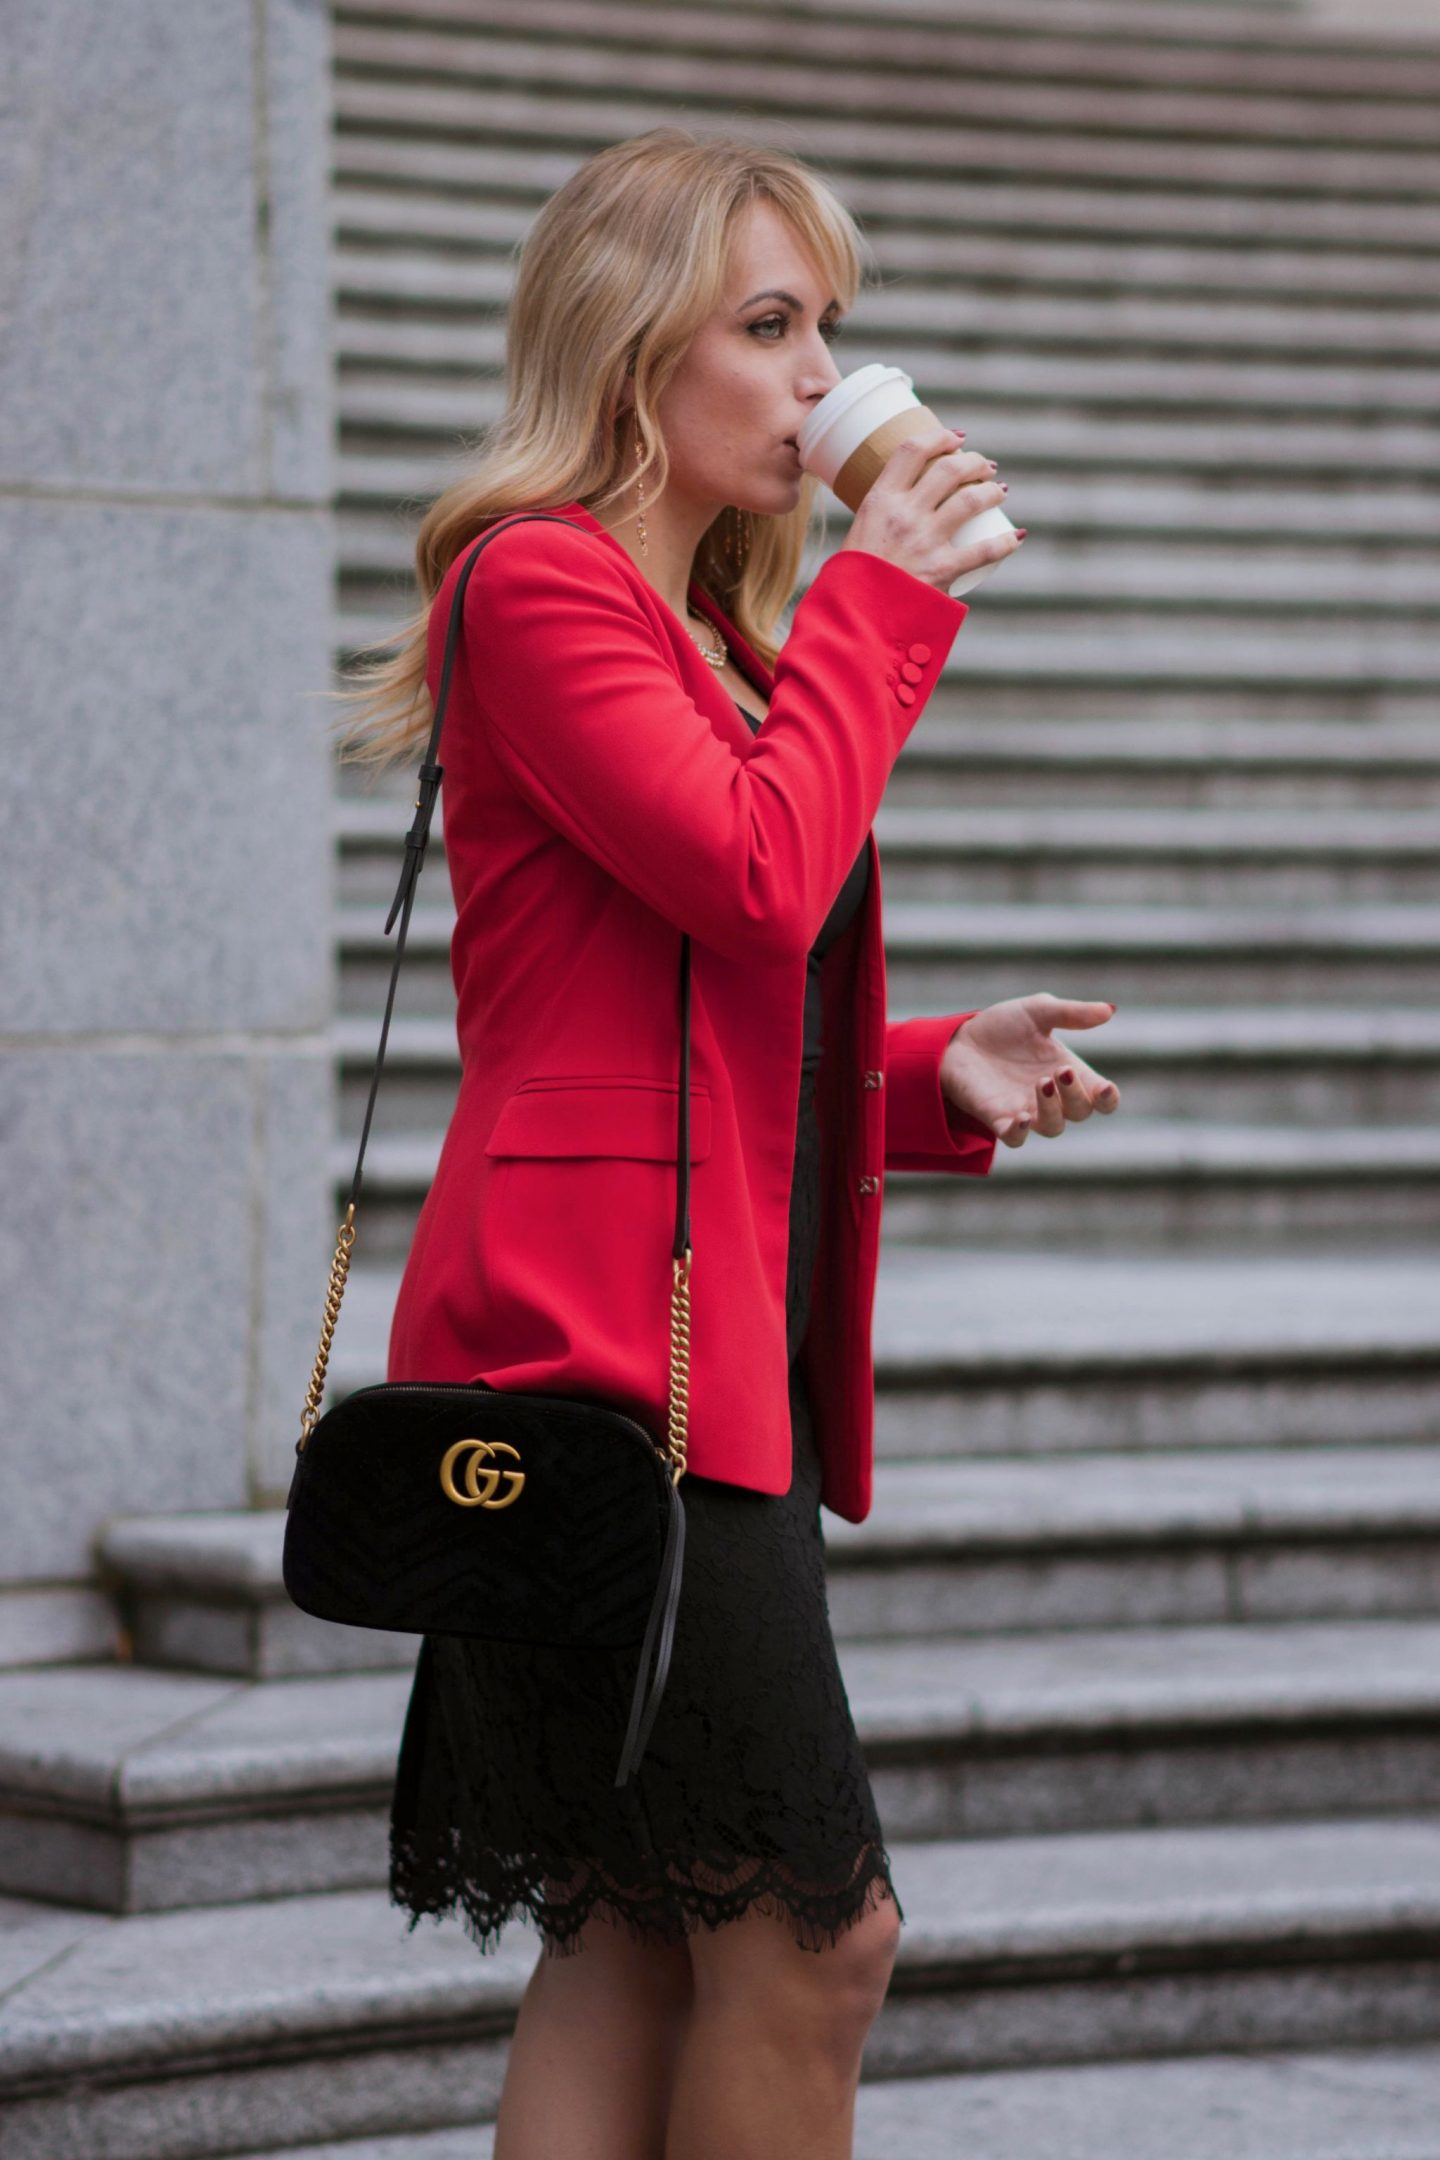 one-blonde-woman-drinking-coffee-red-blazer-black-skirt-what-to-wear-with-a-red-blazer